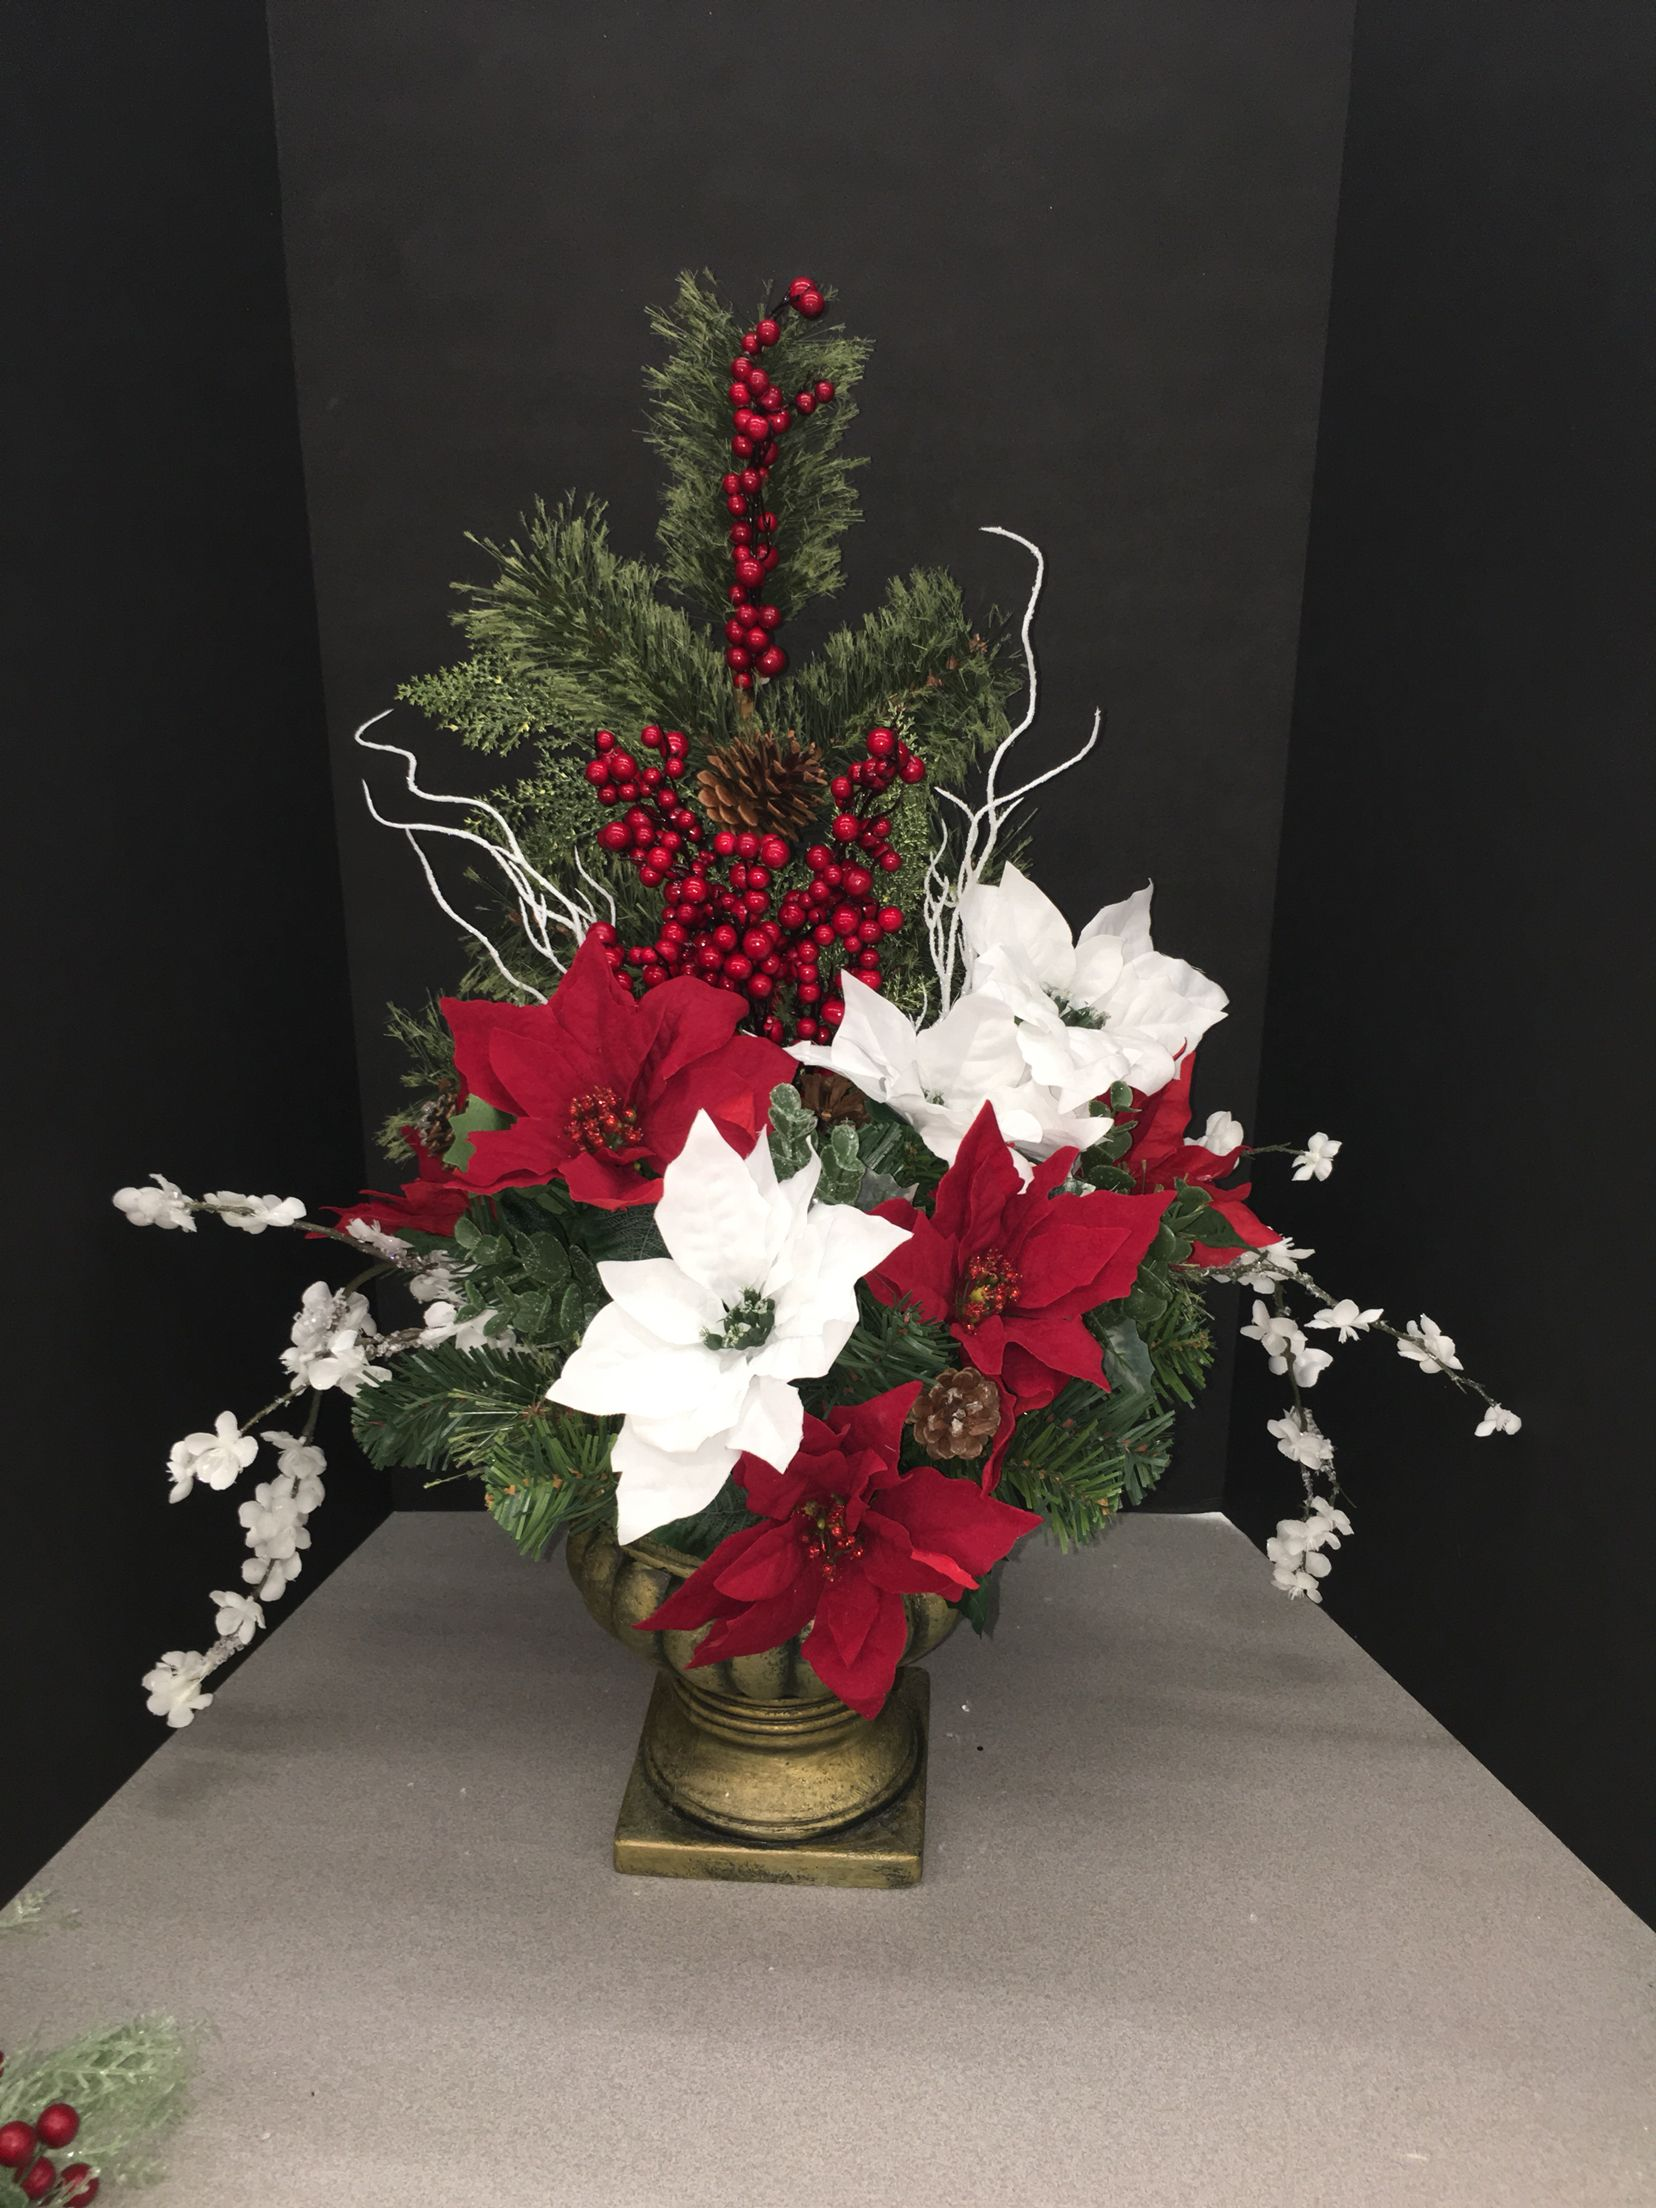 Red berries red and white poinsettias Christmas flower